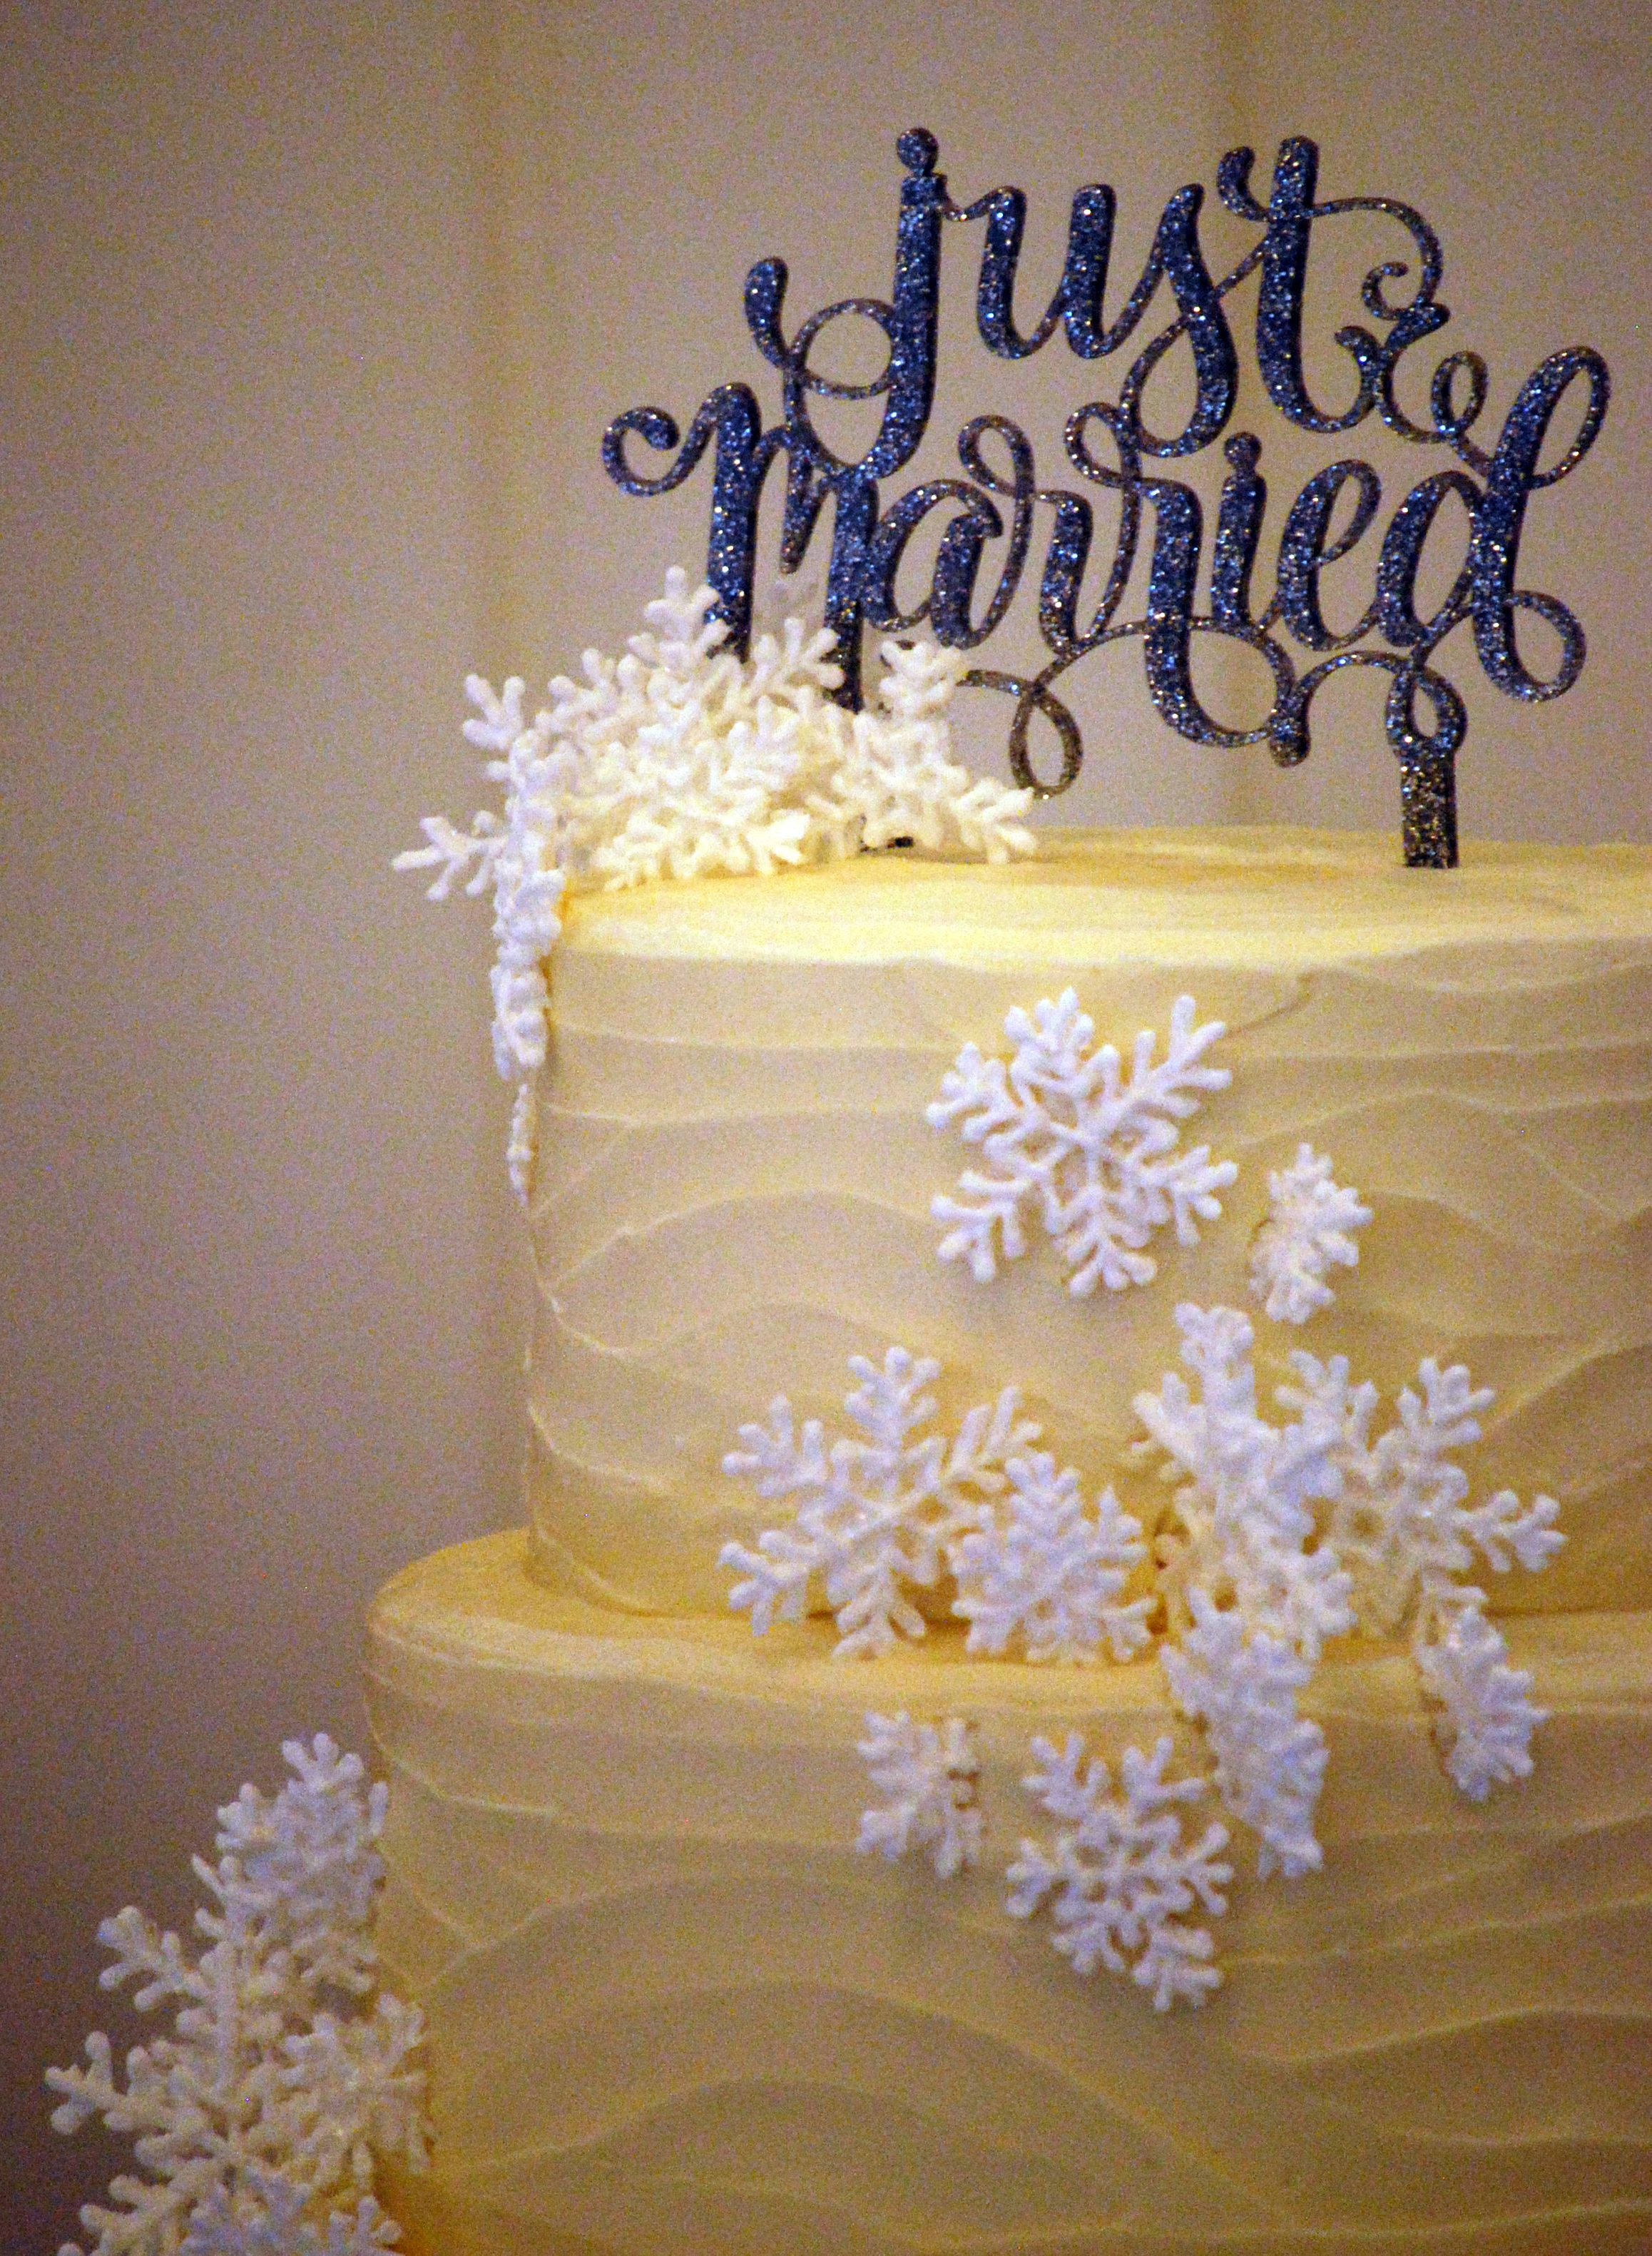 Royal Icing Snowflakes Sprinkled With Edible Glitter For A Winter Wedding Cake